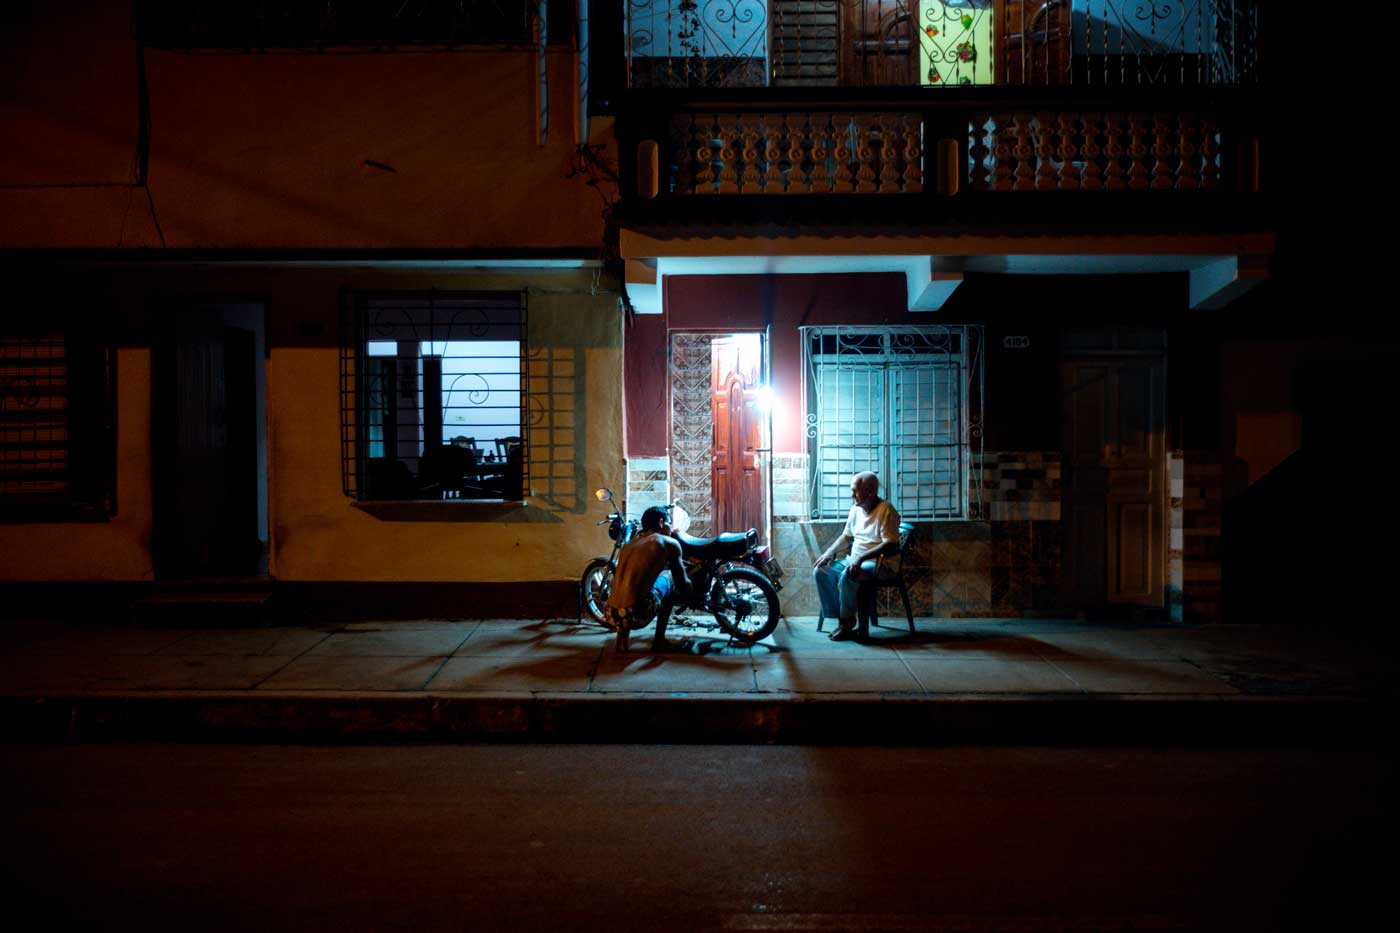 travel-cuba-cienfuegos-leica-m10-rangefinder-35mm-f2-summicron-iv-pre-a-trip-night-fixing-bike-outside-home